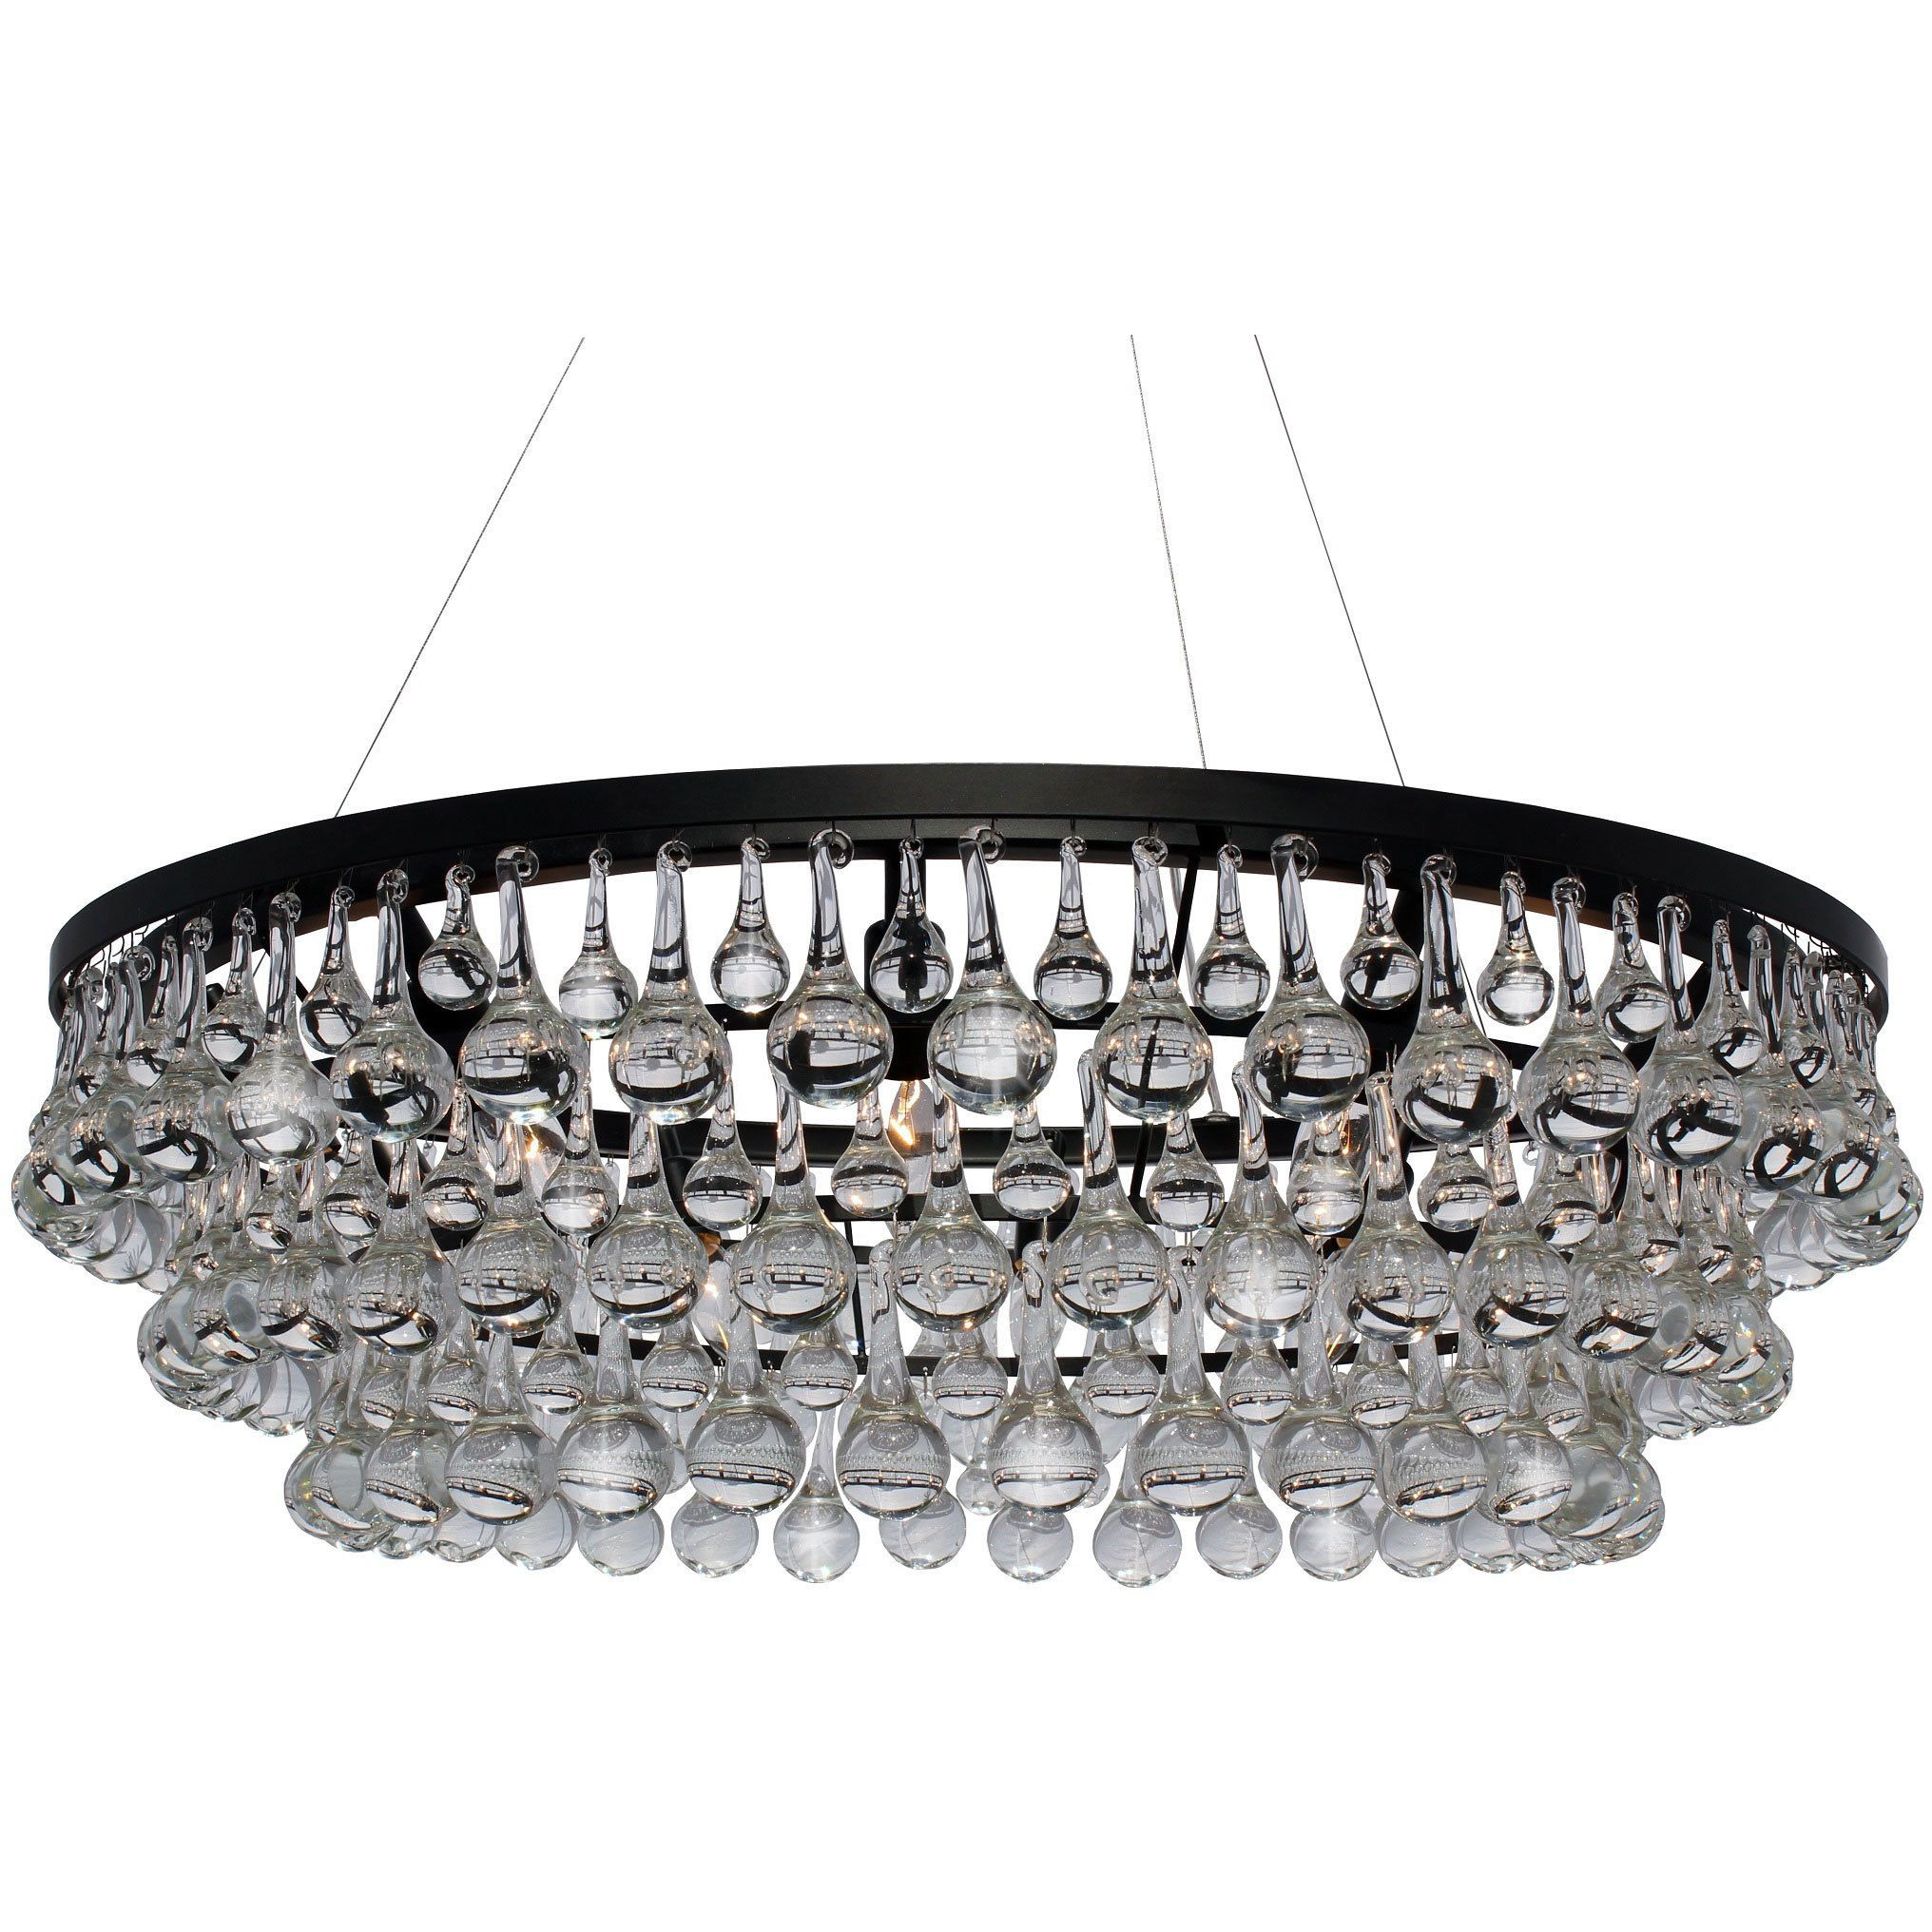 This stunning 10 light glass crystal chandelier will light up your